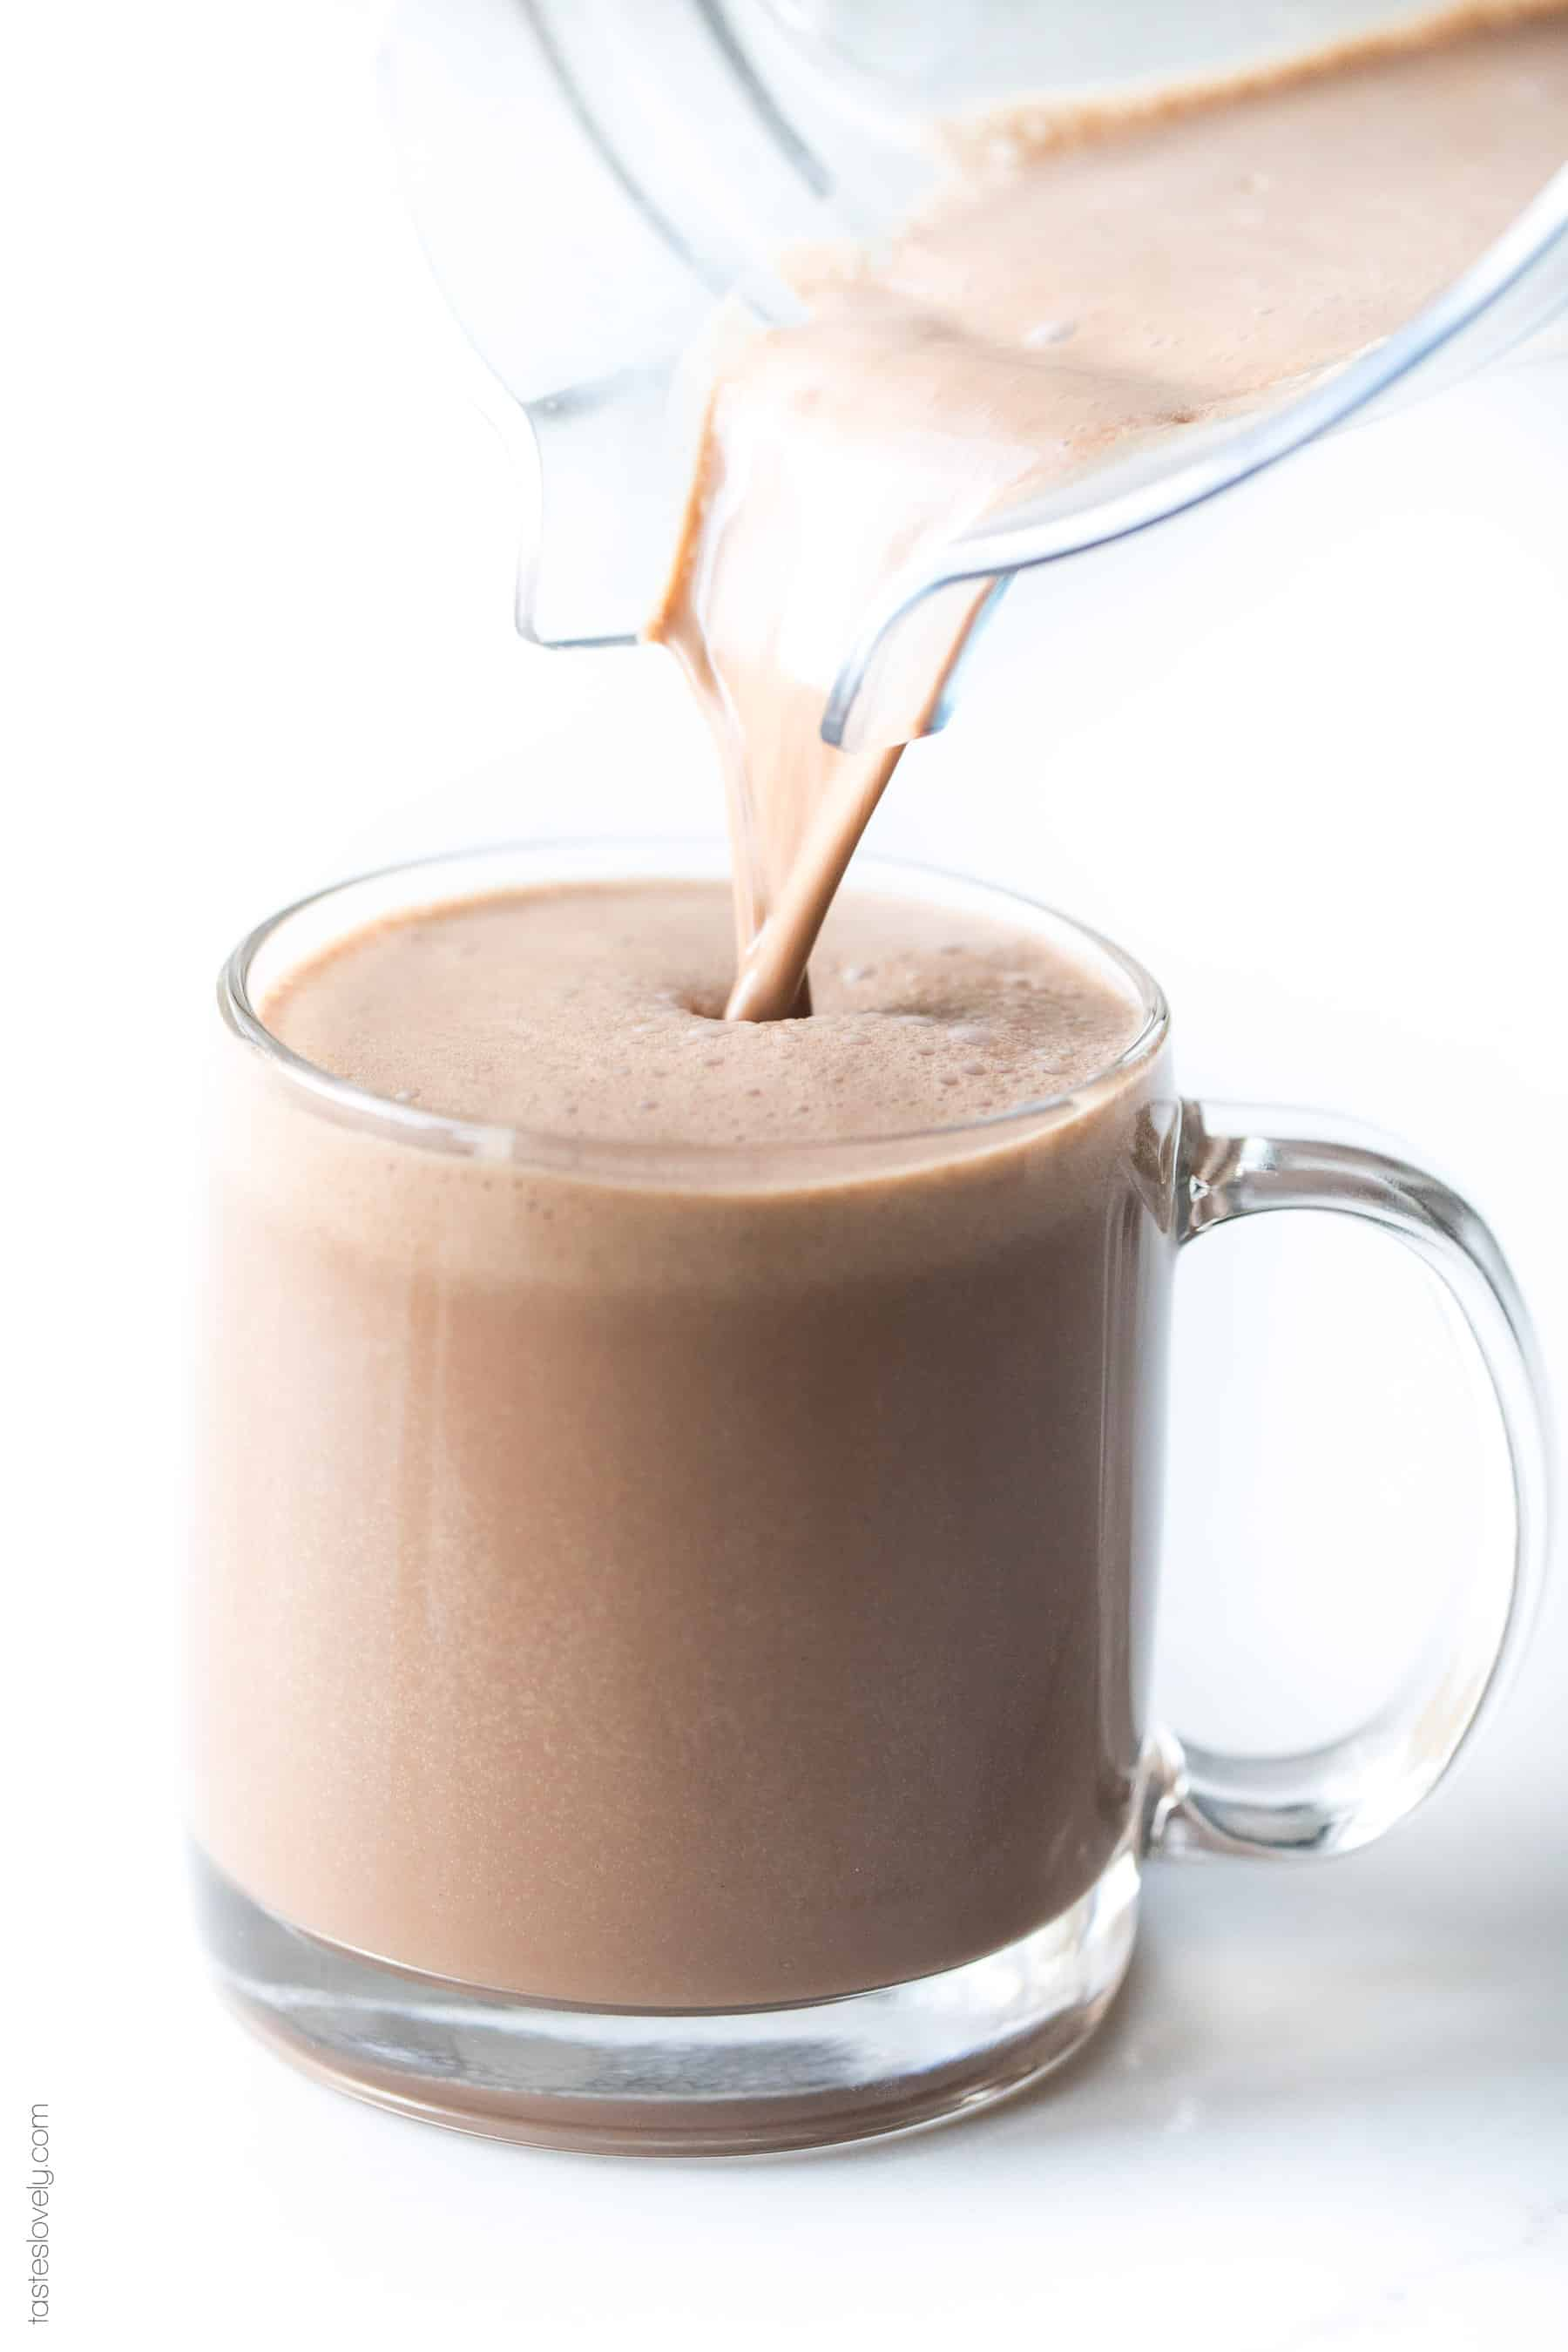 pouring hot chocolate into a clear mug